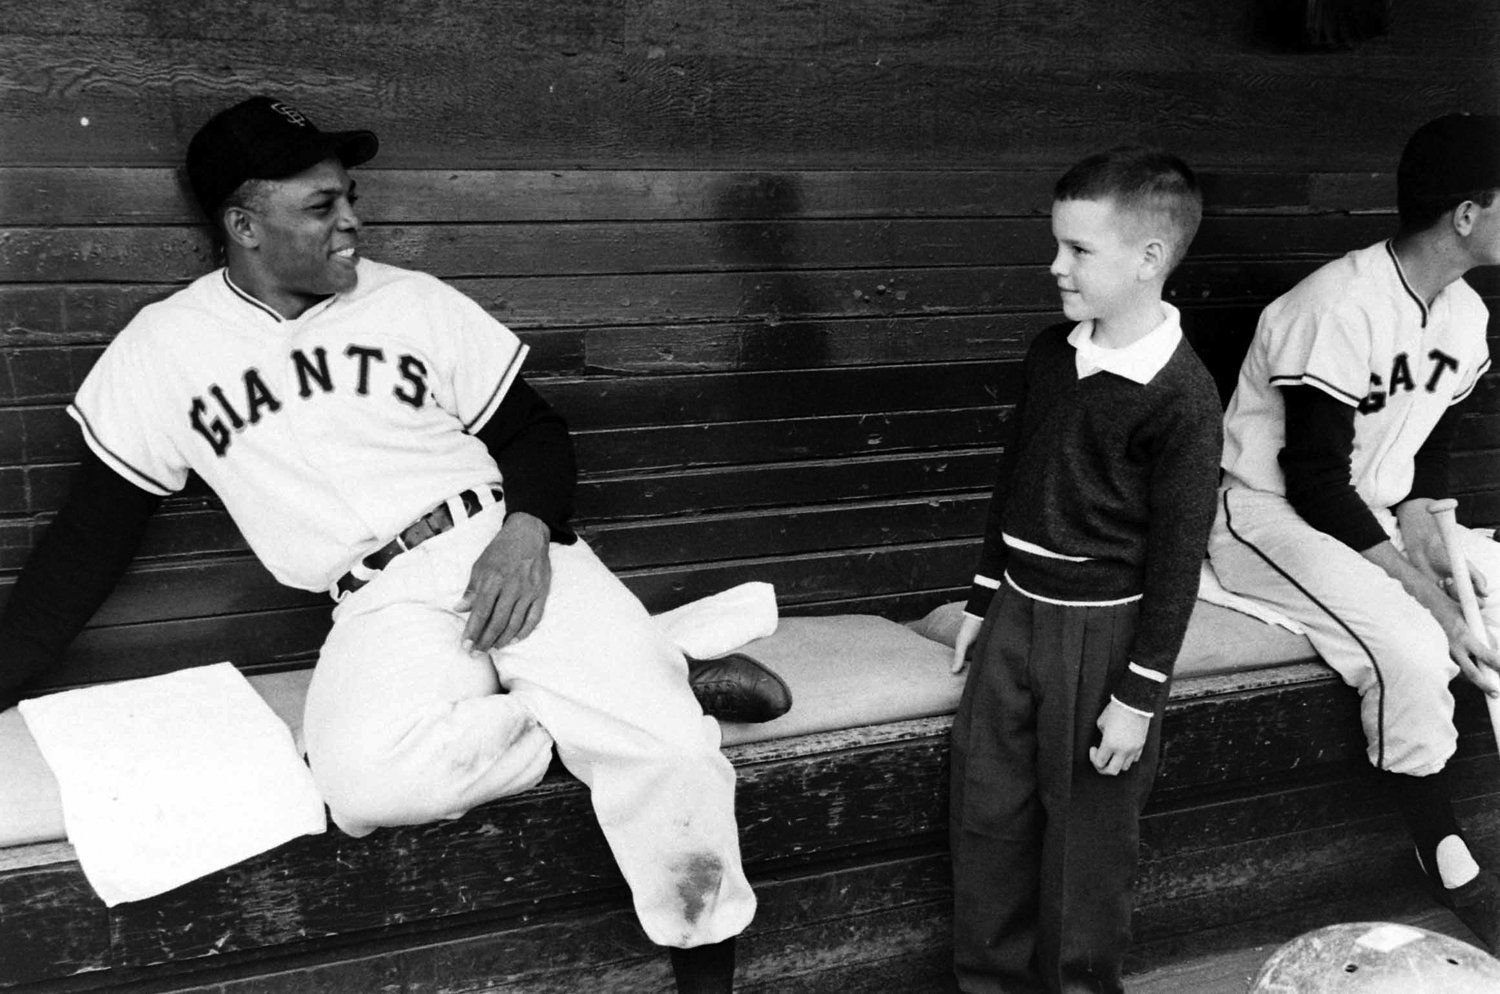 Willie Mays and young fan, San Francisco, 1958.